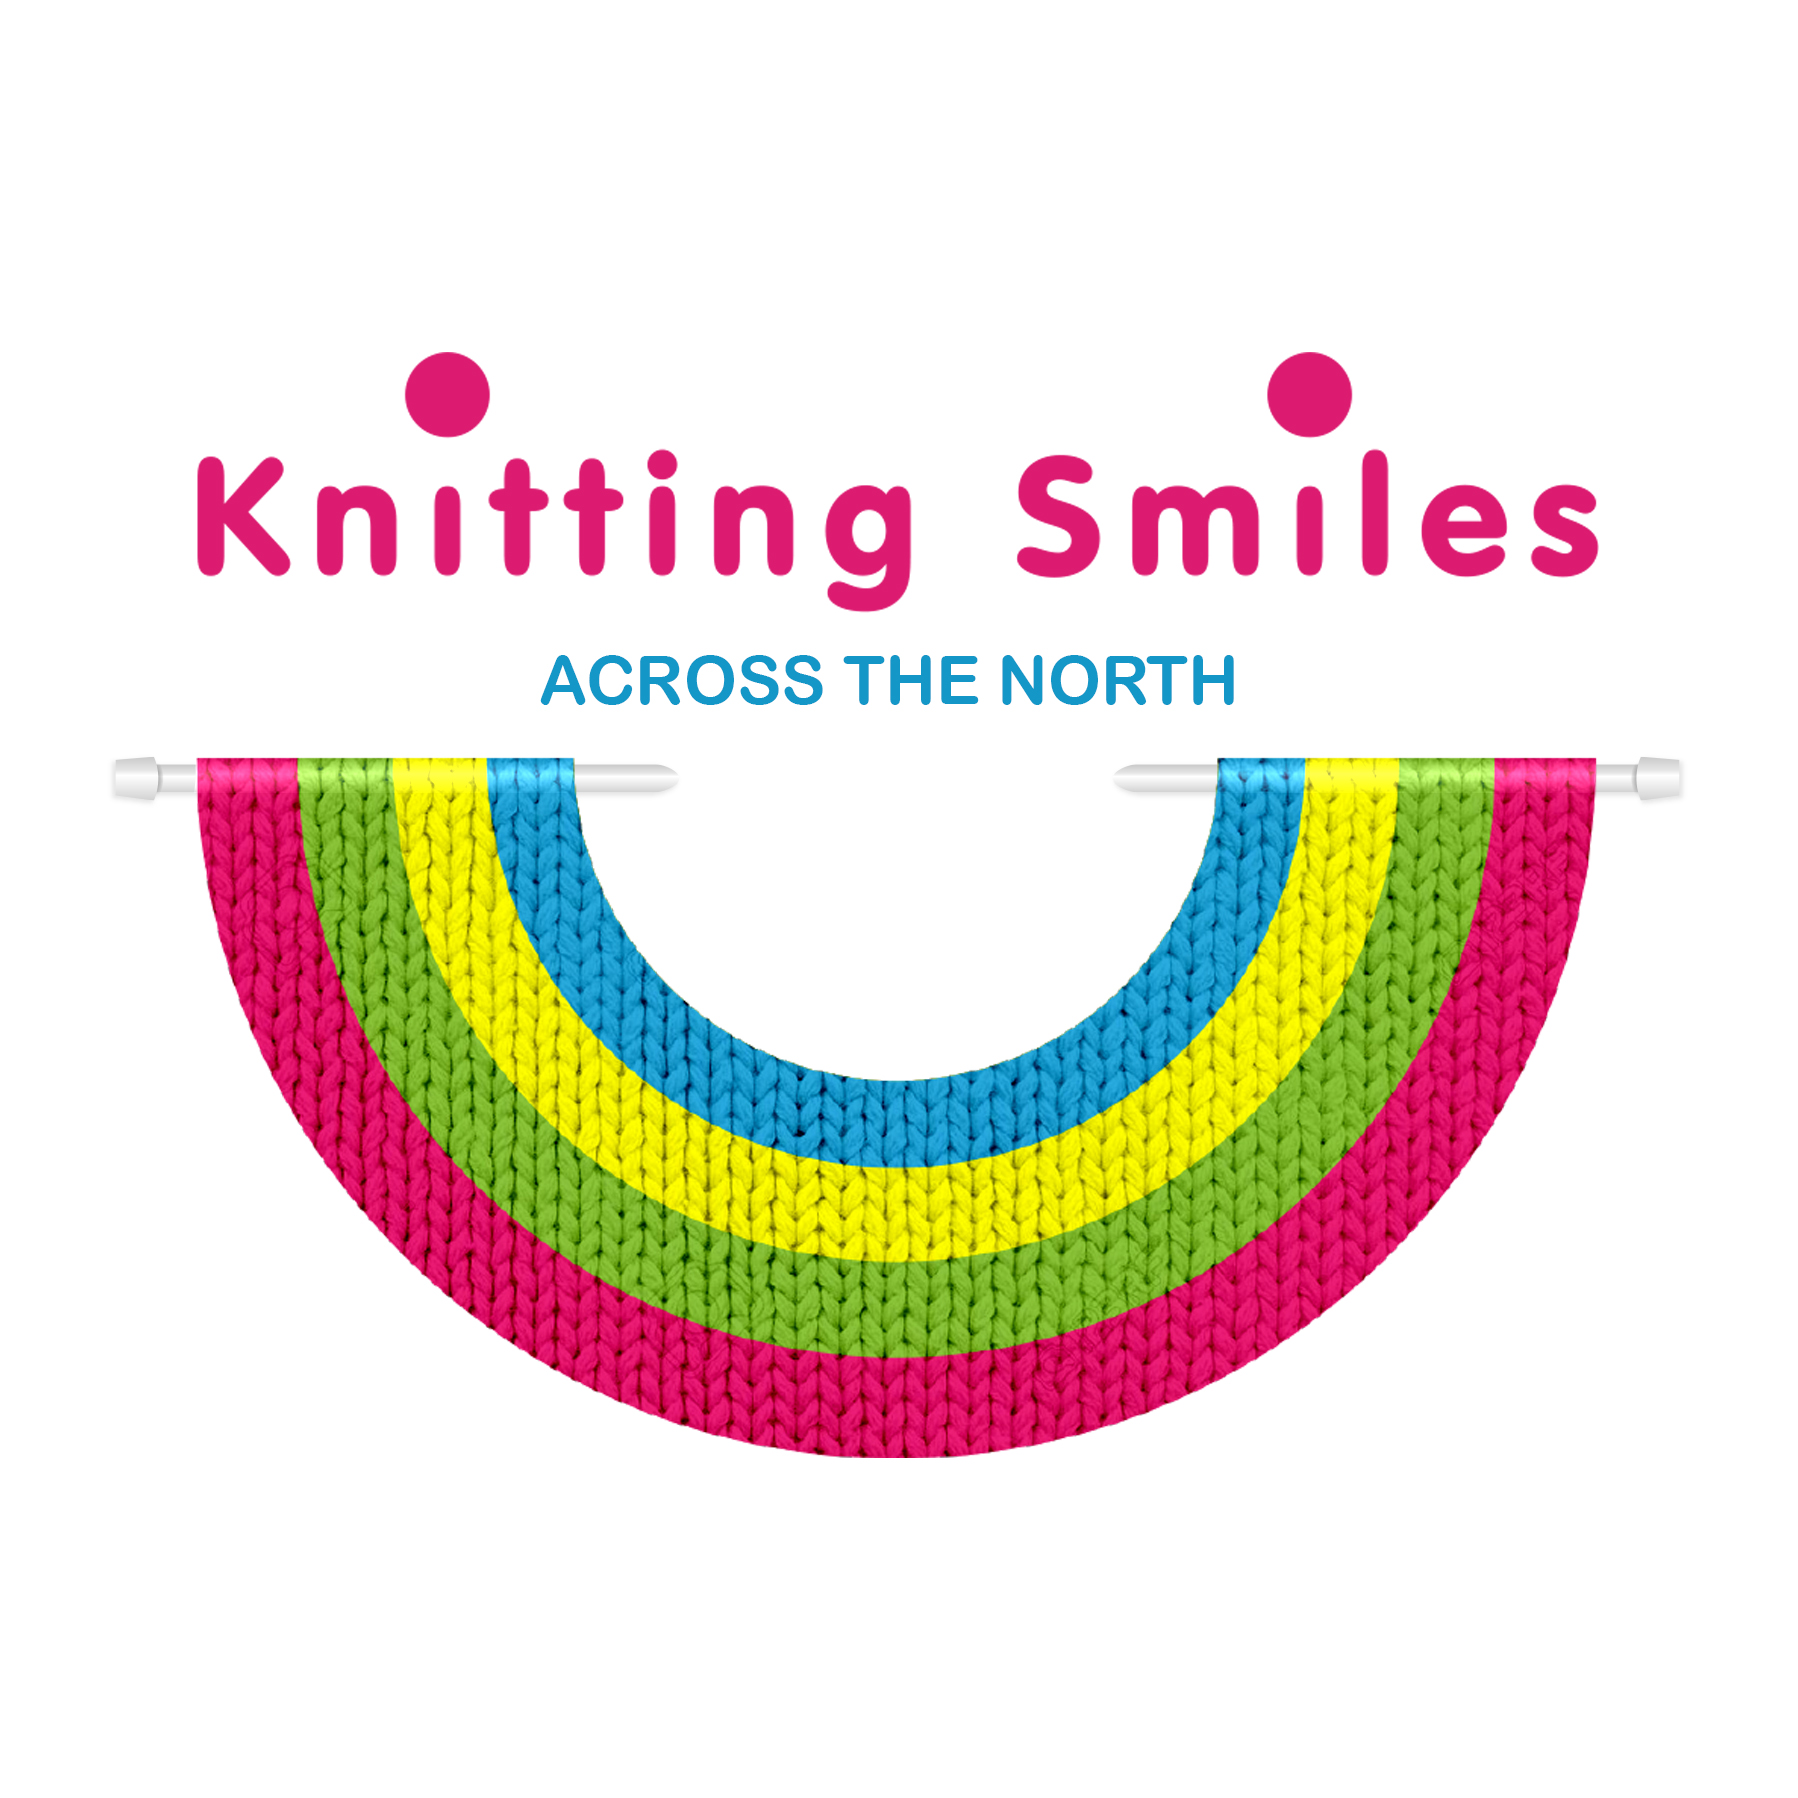 Knitting Smiles Across East Lancs